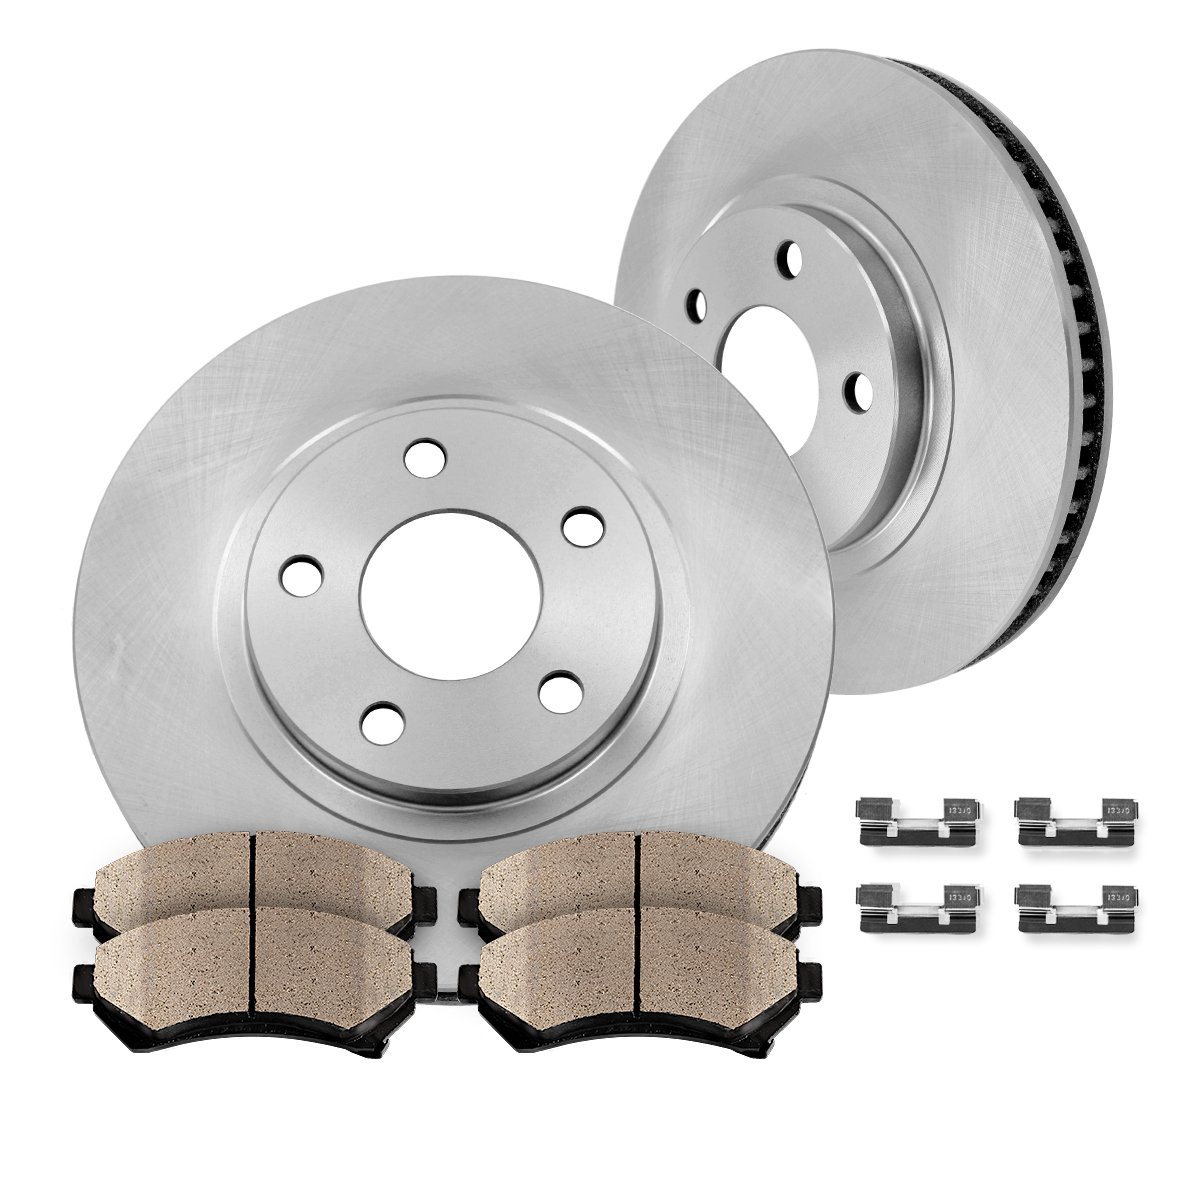 Fits: 2013 13 2014 14 2015 15 Toyota Rav 4 275mm Diameter Front Rotors KM039881 E-Coated Slotted Drilled Rotors + Ceramic Pads Max Brakes Front Supreme Brake Kit